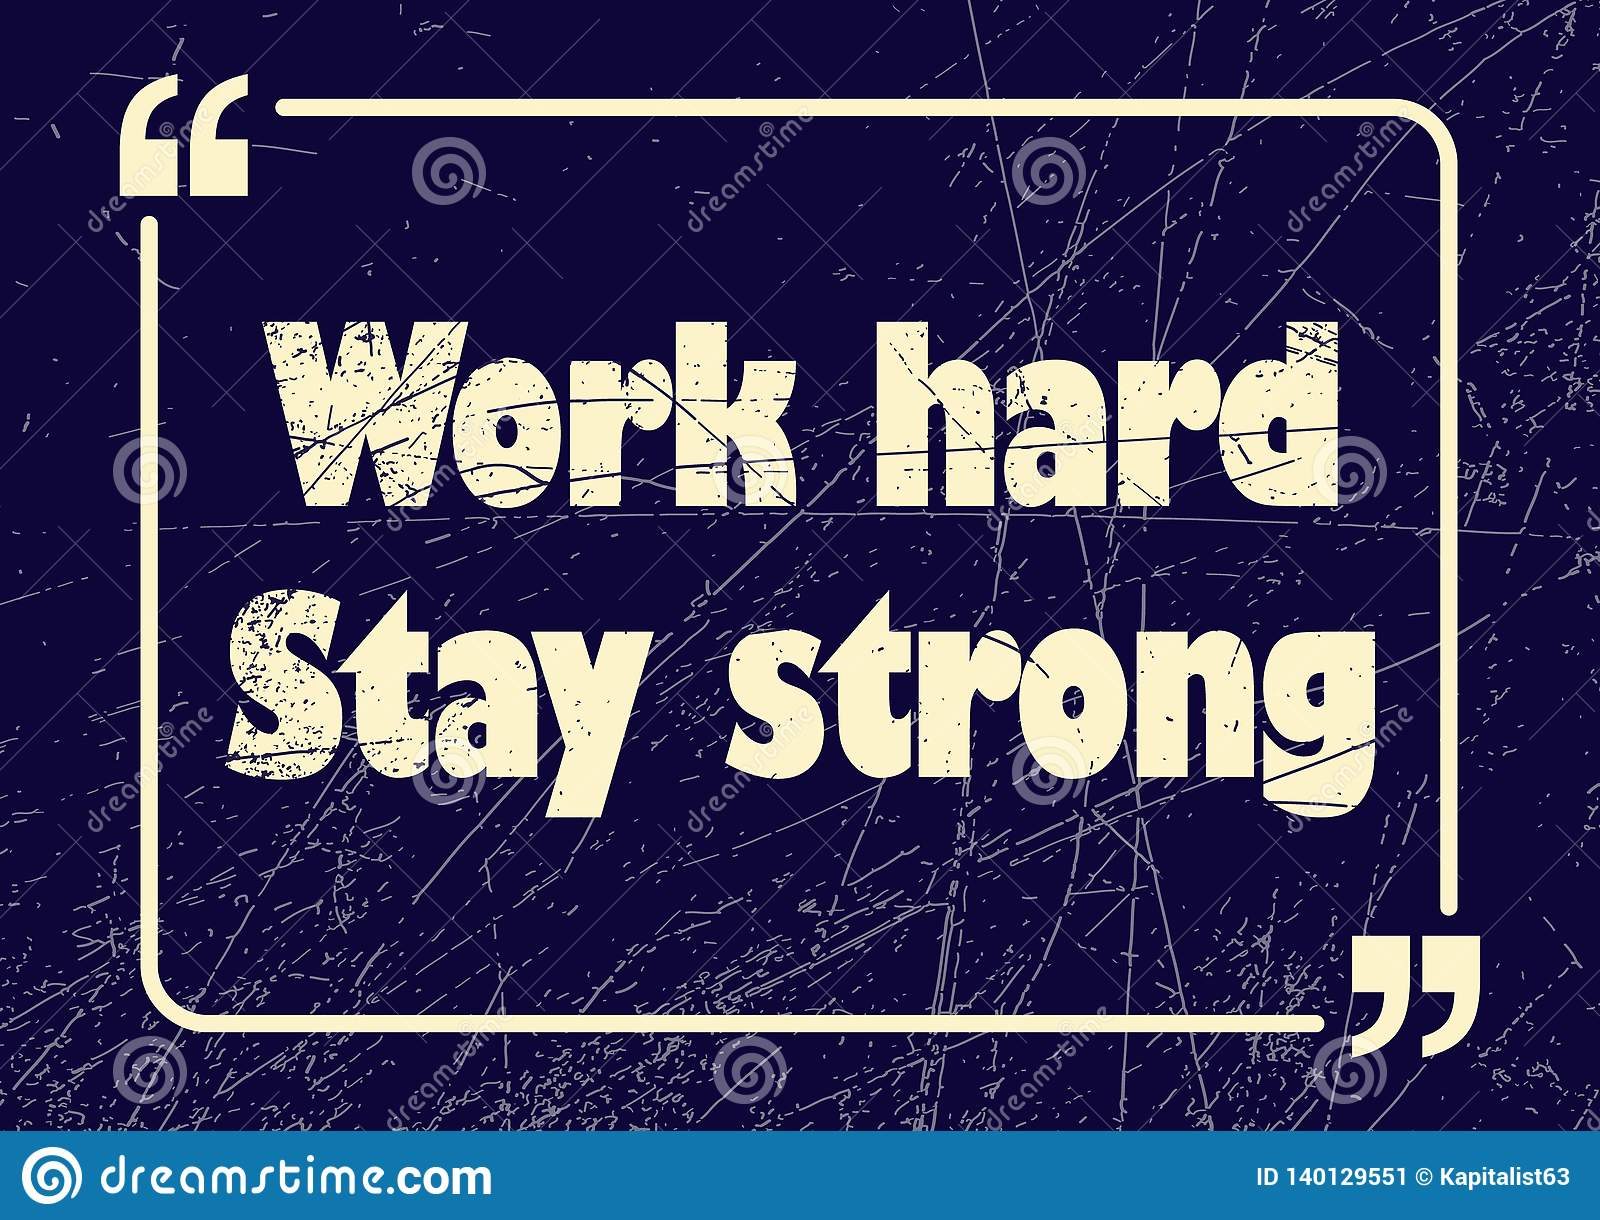 6abc76d717 Work hard stay strong. Inspirational motivational quote. Vector illustration